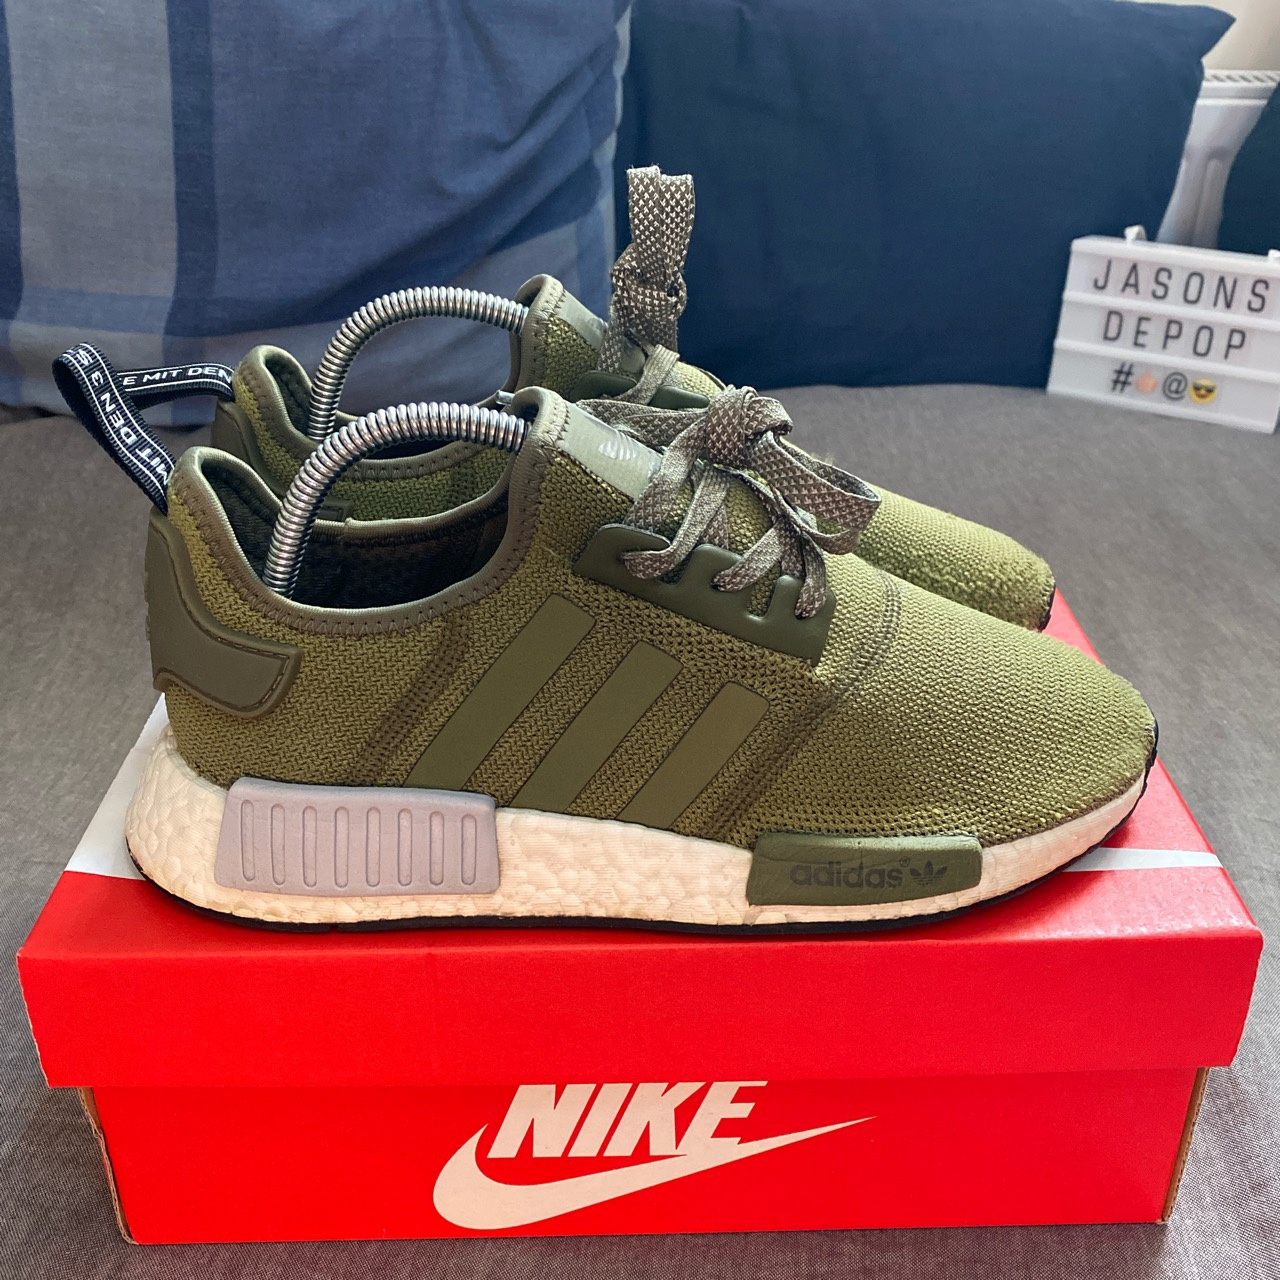 Used Adidas NMD trainers in Khaki Green colour. UK...